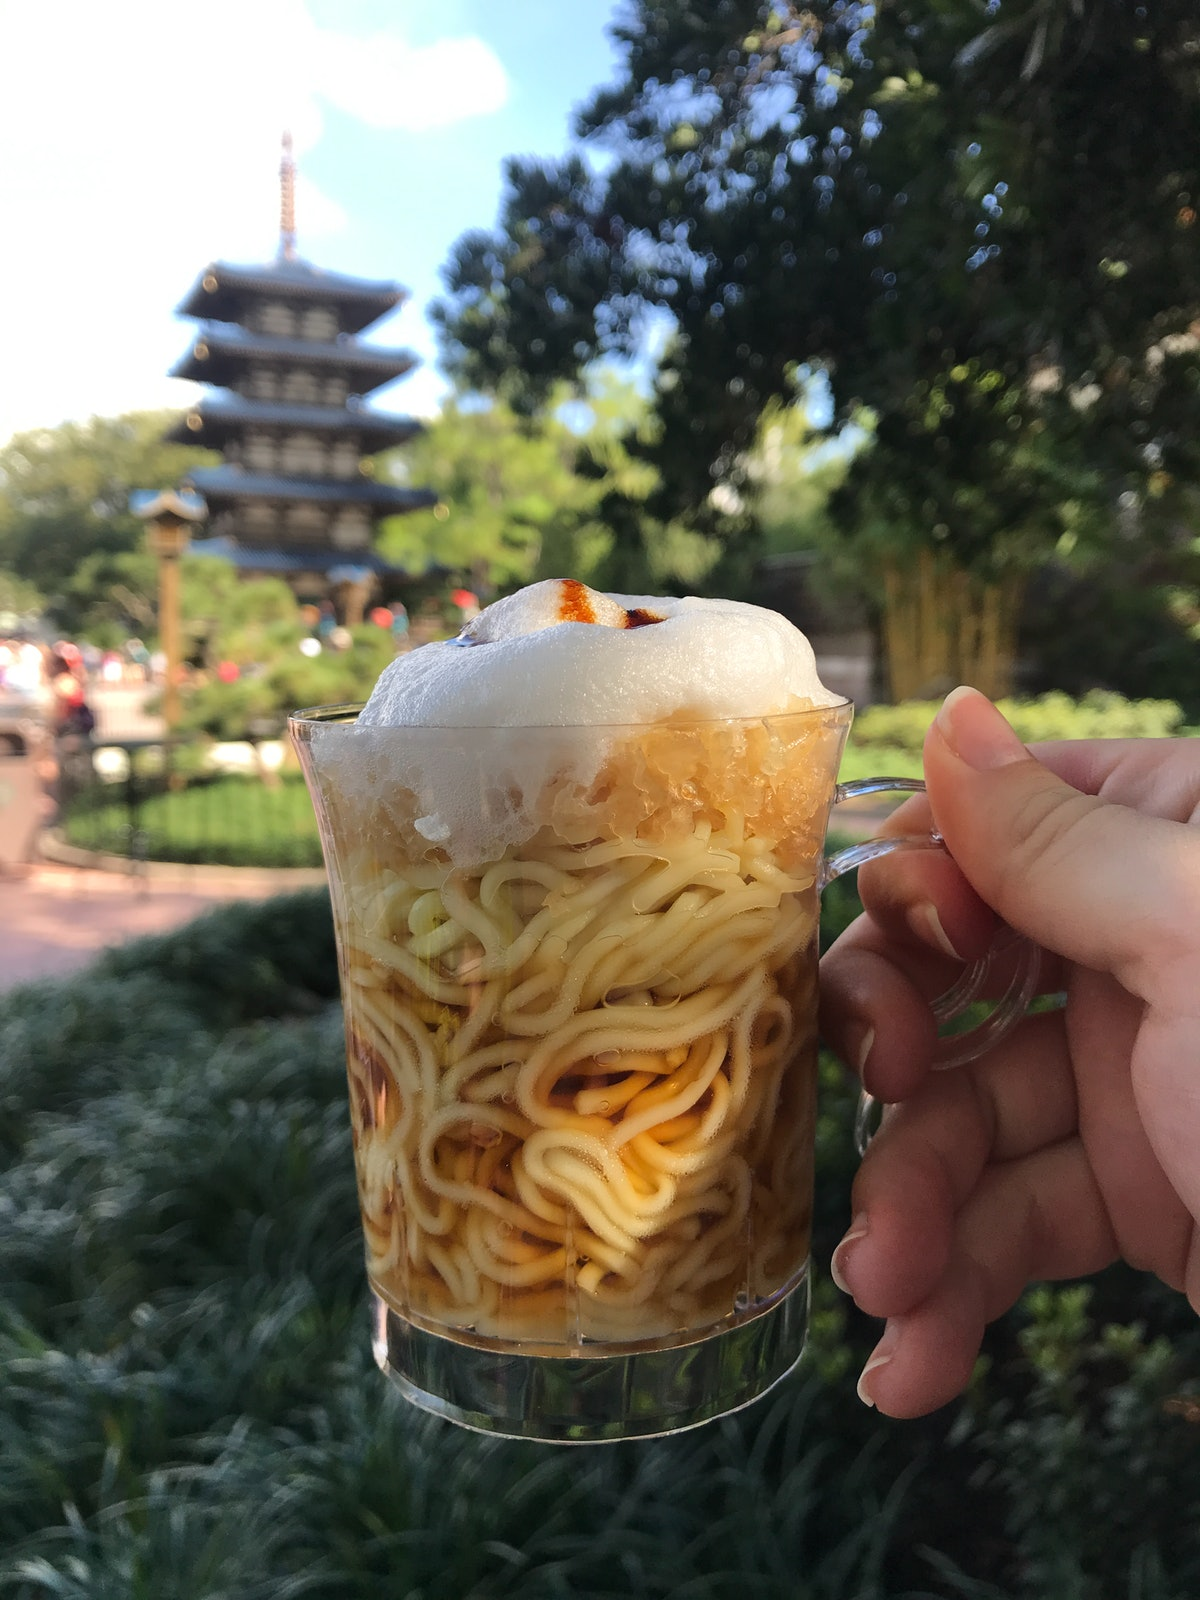 A woman's hand holds up a cup of chilled ramen with froth on top at Disney's Food & Wine Festival at Epcot.